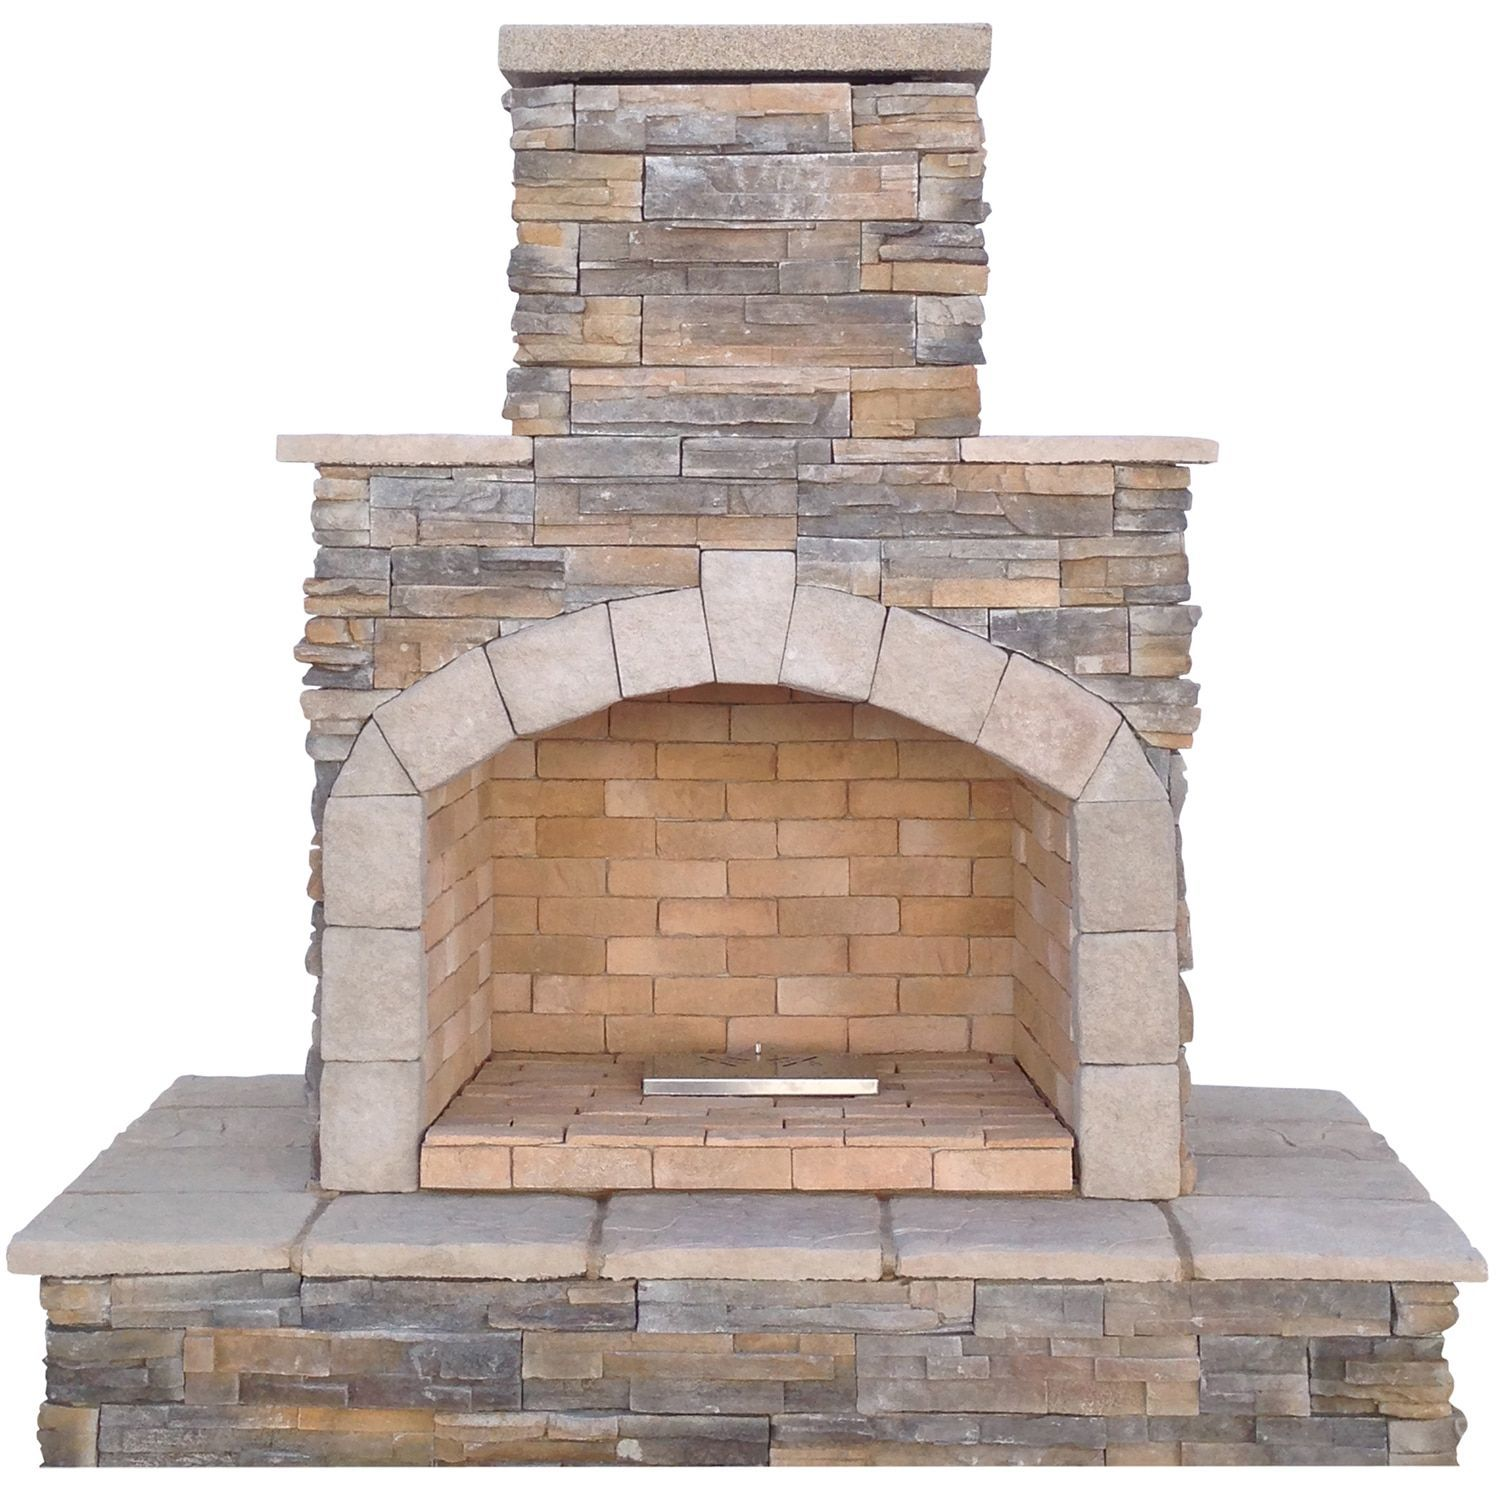 f8ad13a442dd1ff8848f99b20a142682 Top Result 53 Inspirational Outside Stone Fireplace